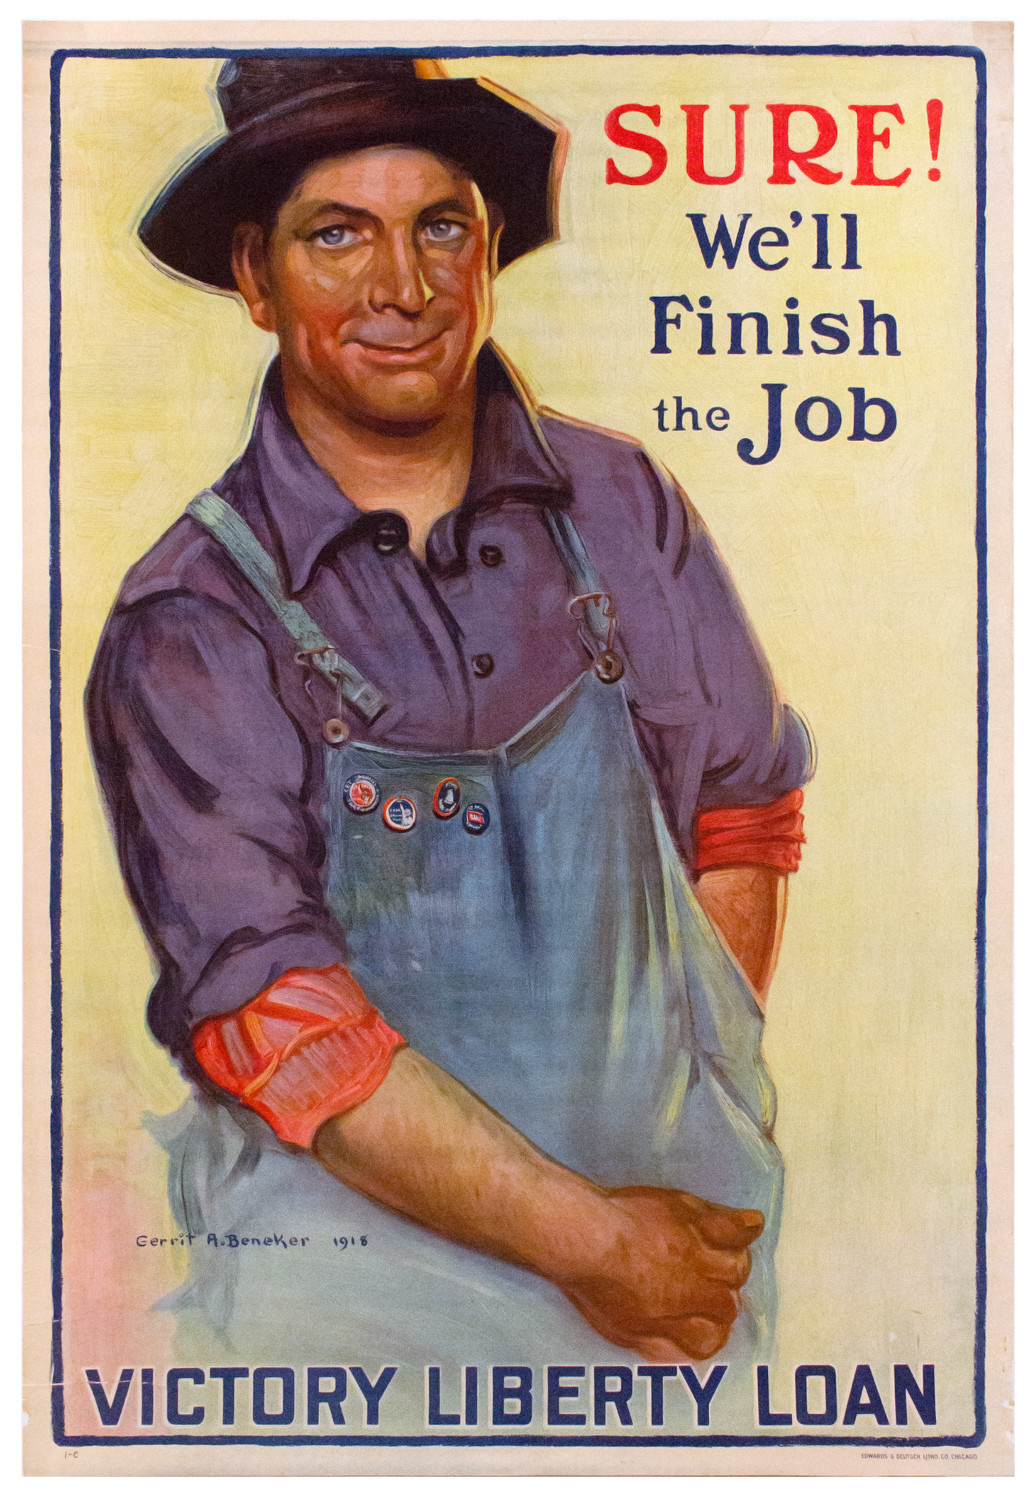 An obliging worker ready to help the United States is the face of Gerrit Albertus Beneker's 'Sure! We'll Finish the Job.' Posters like this helped the country convince people to do their part during the third year of World War I.